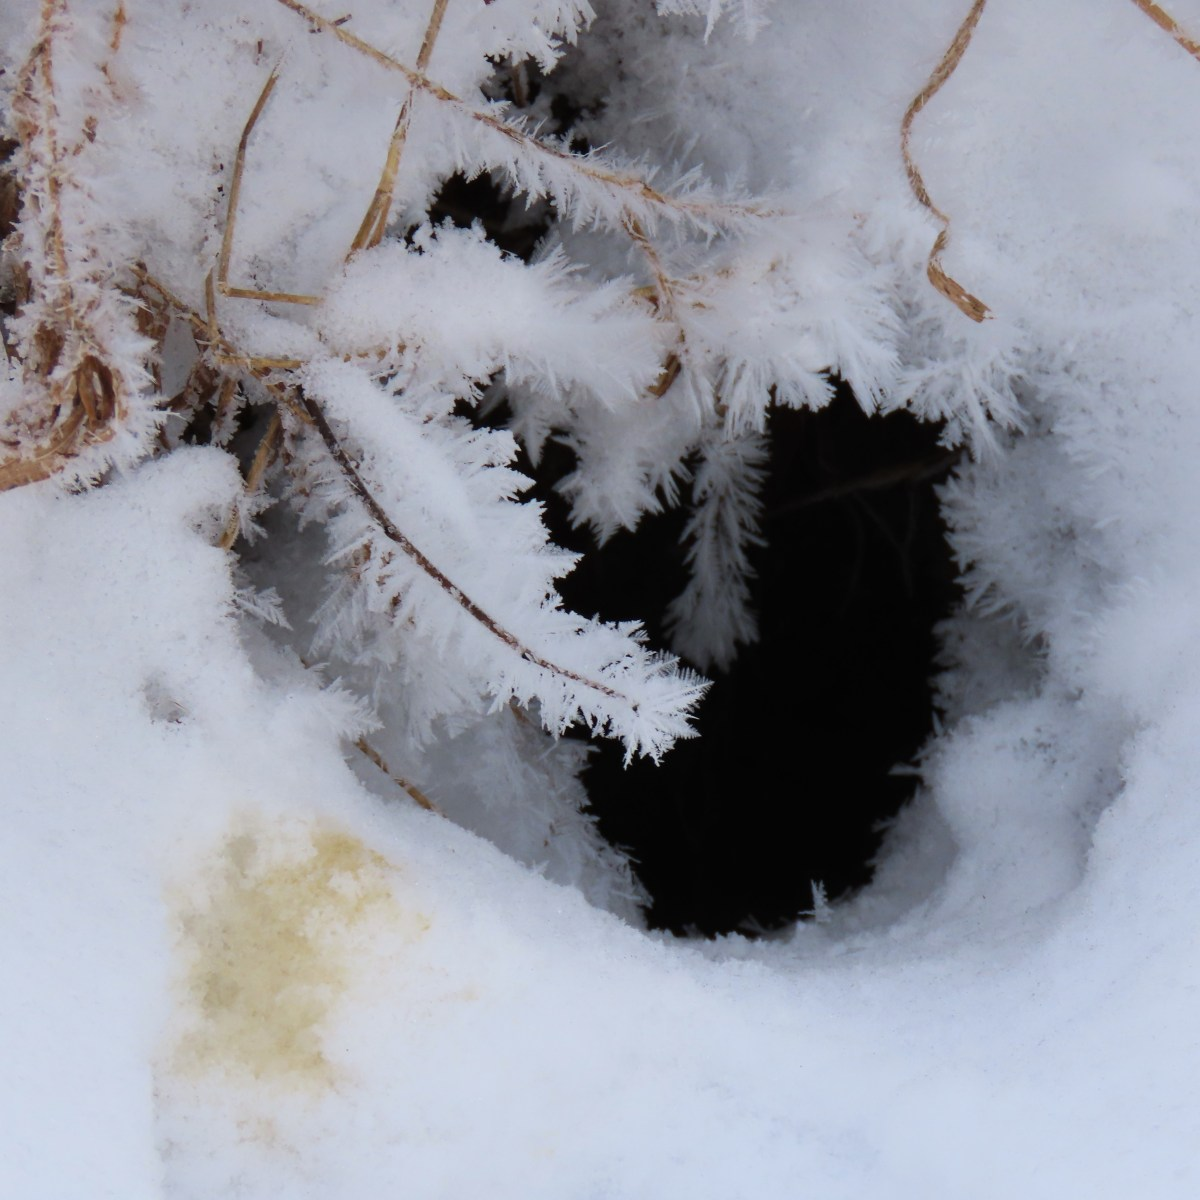 The frosted entrance of an animal den with a circle of urine next to the opening